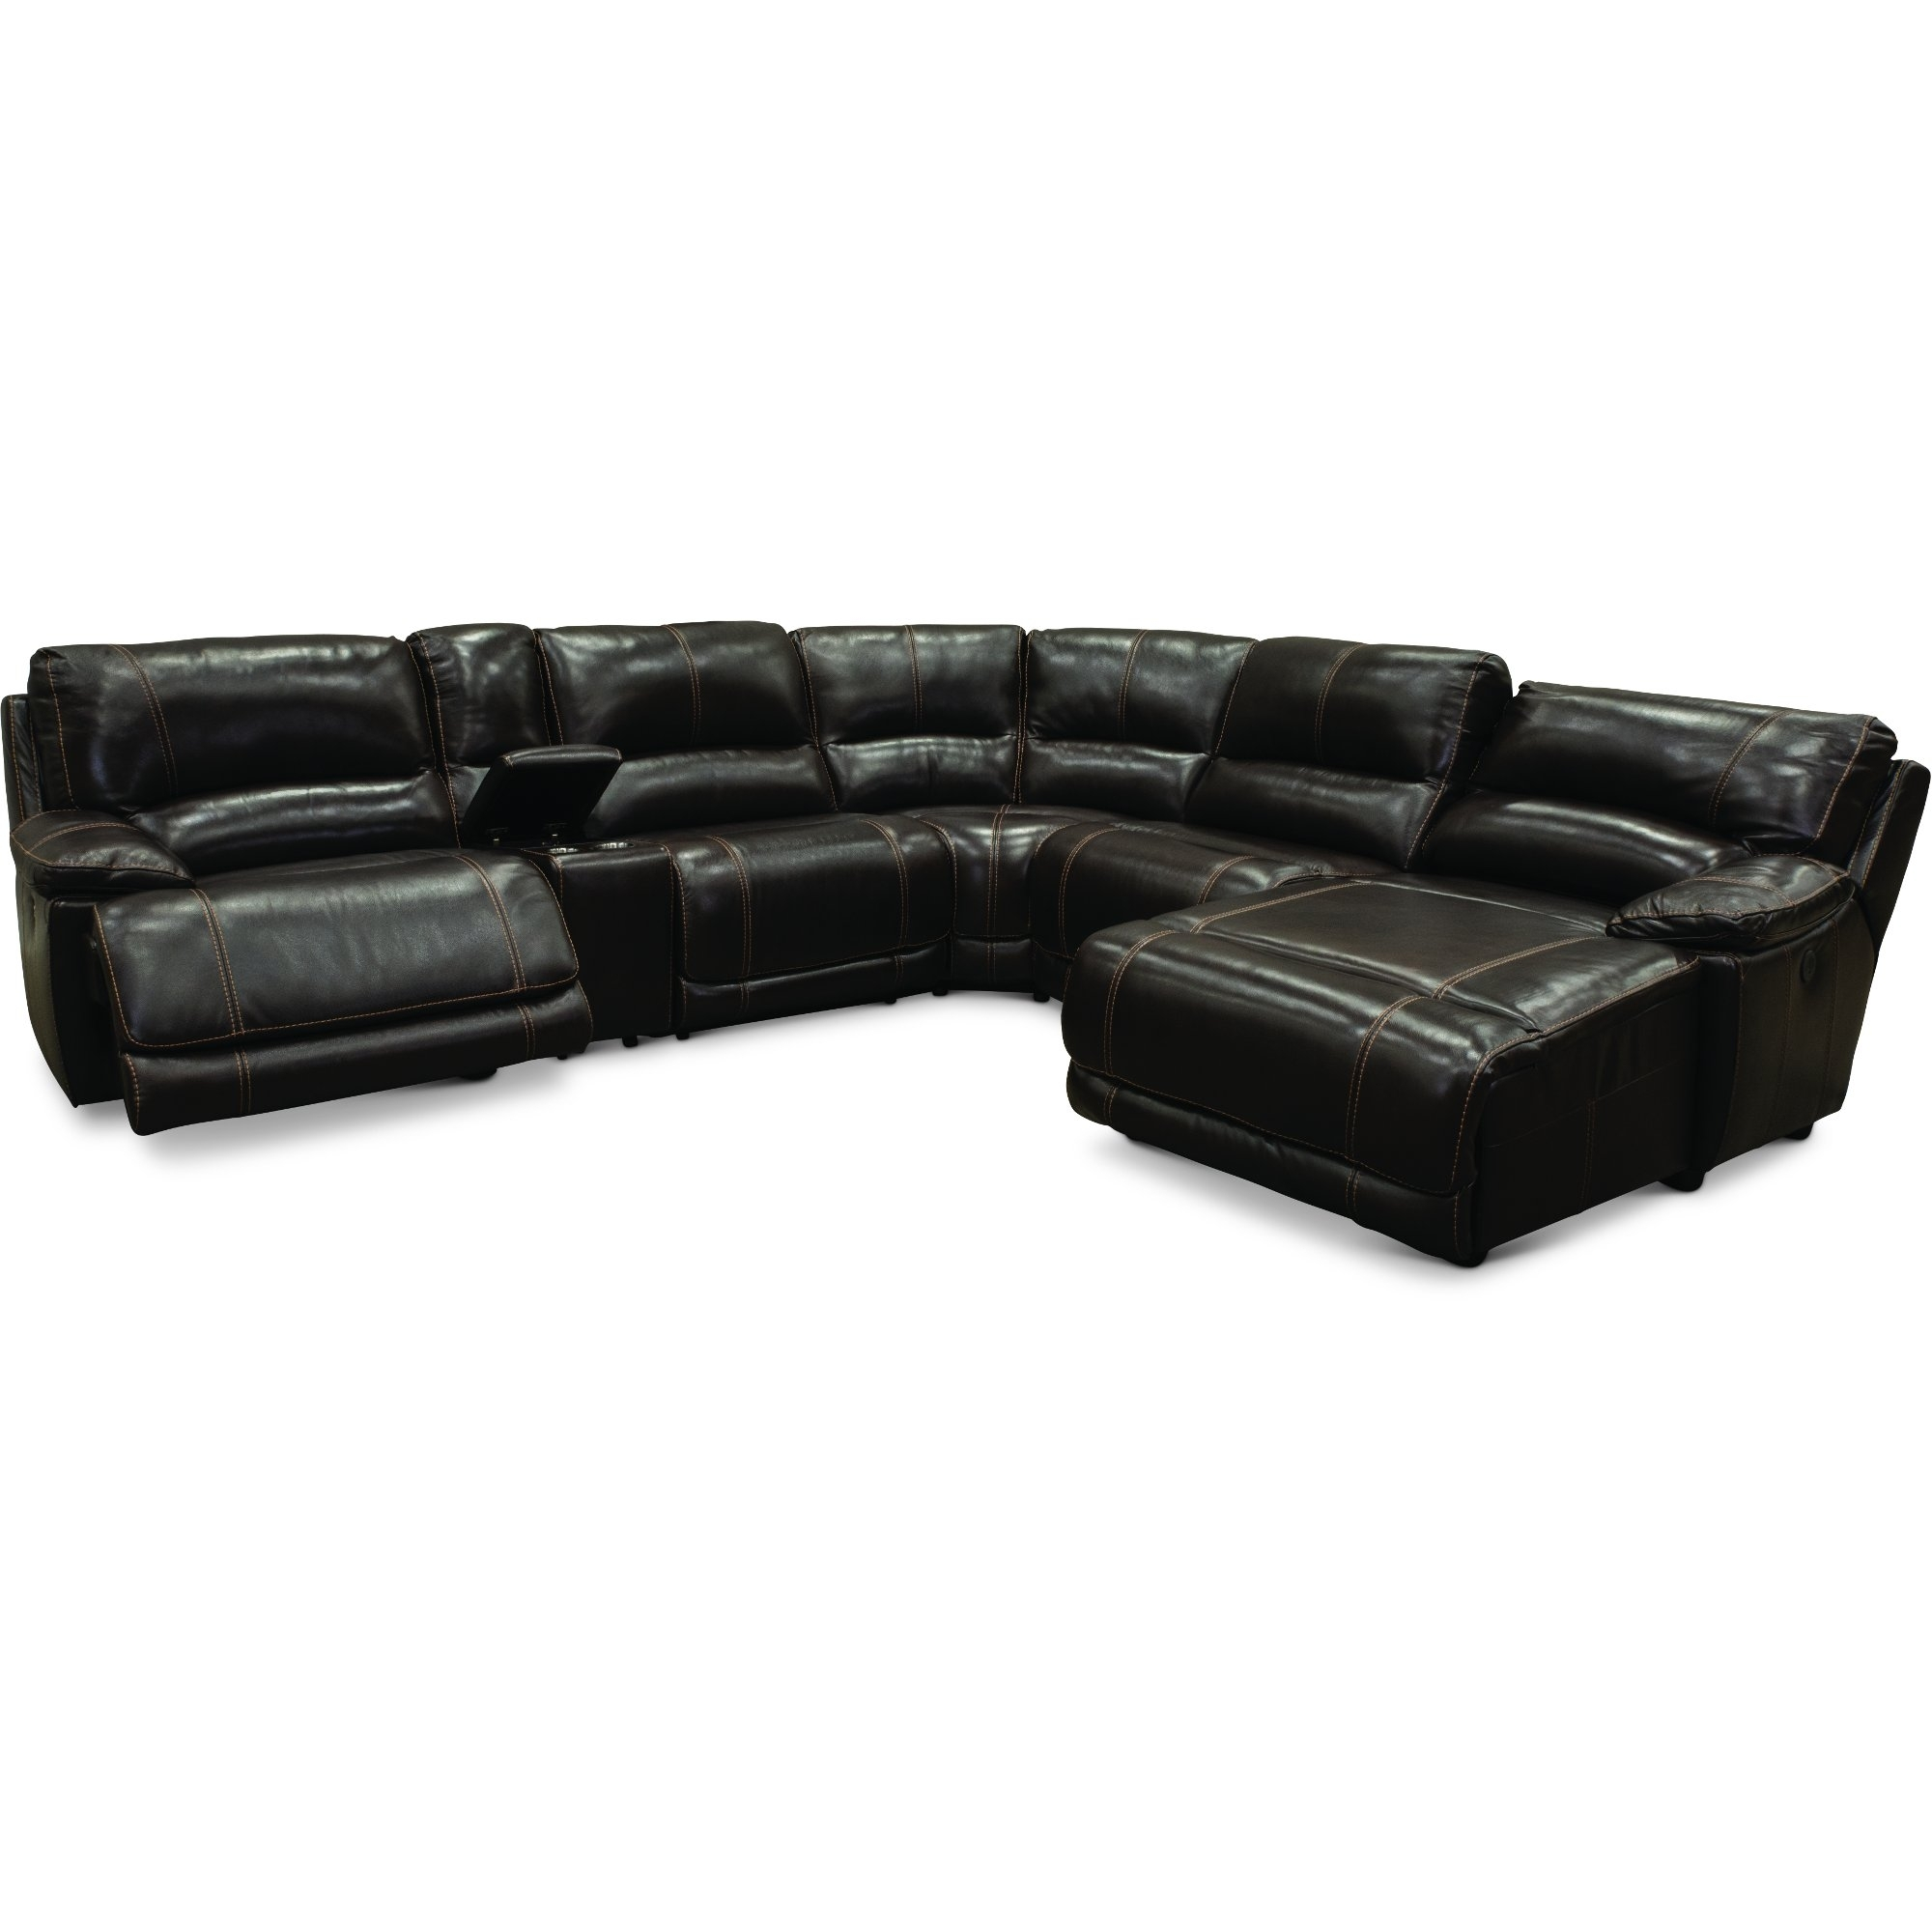 Brown 6 Piece Power Reclining Sectional Sofa - Brant | Rc Willey within Denali Charcoal Grey 6 Piece Reclining Sectionals With 2 Power Headrests (Image 5 of 30)